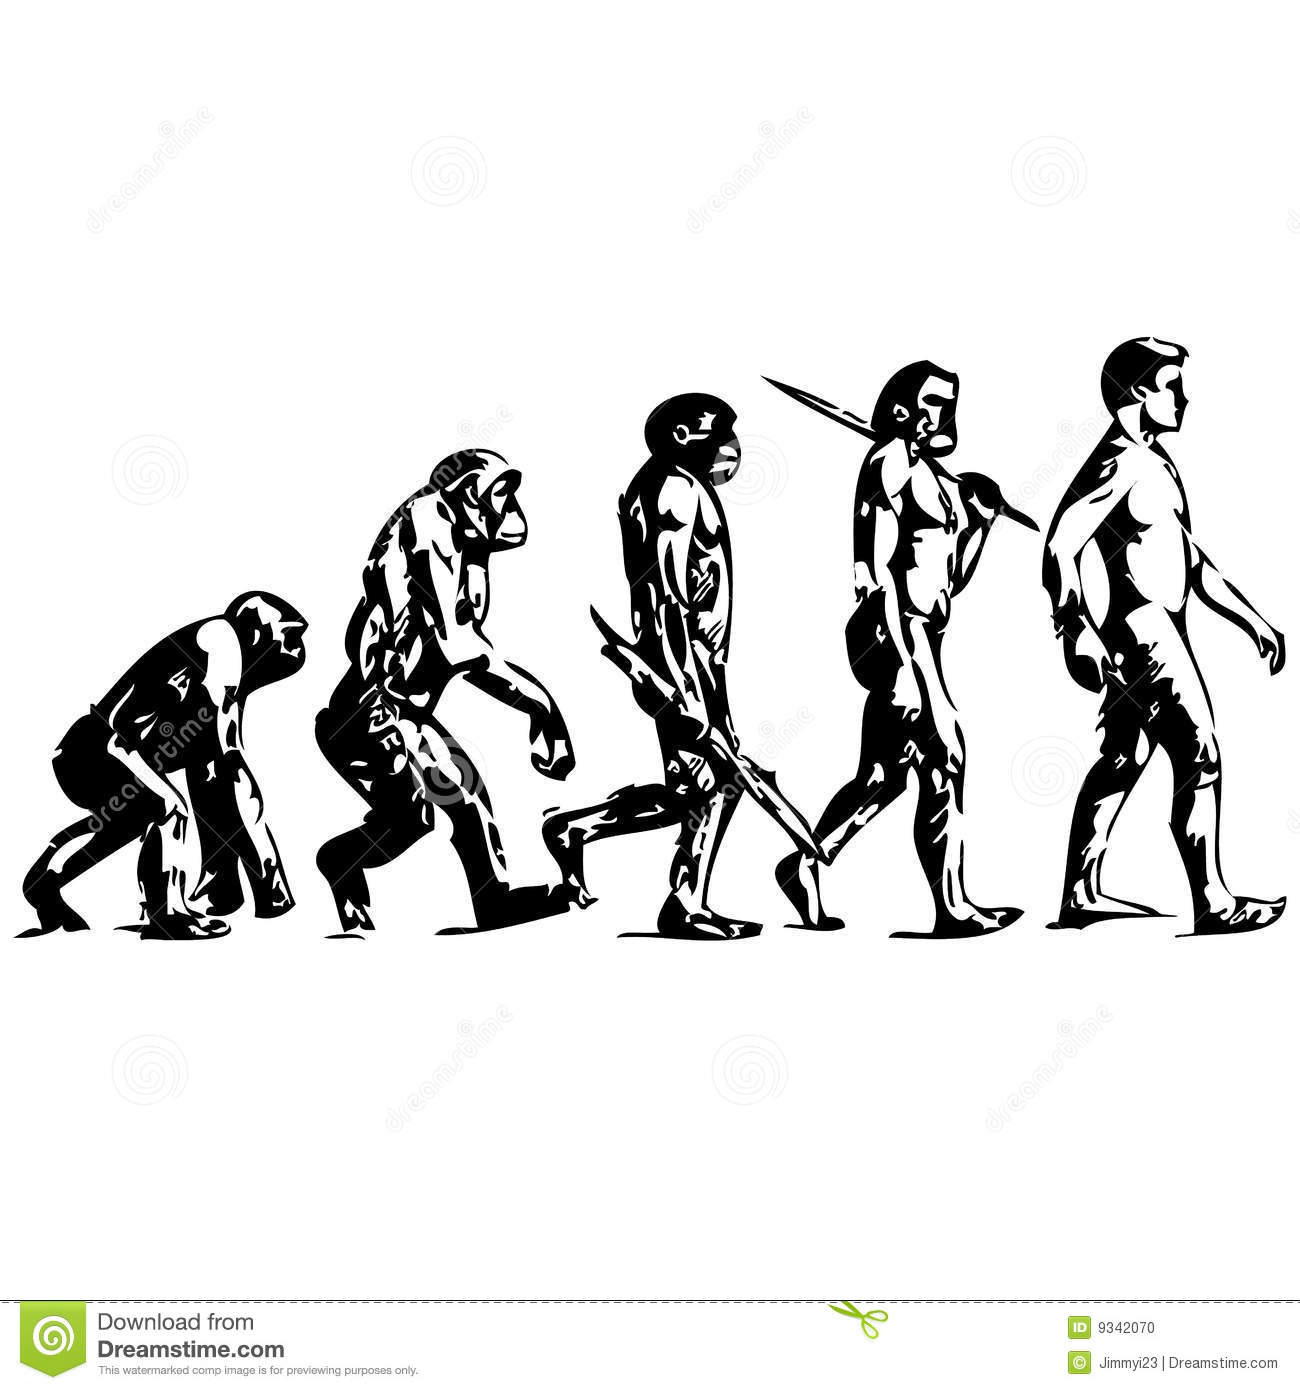 Evolution of man free clipart.